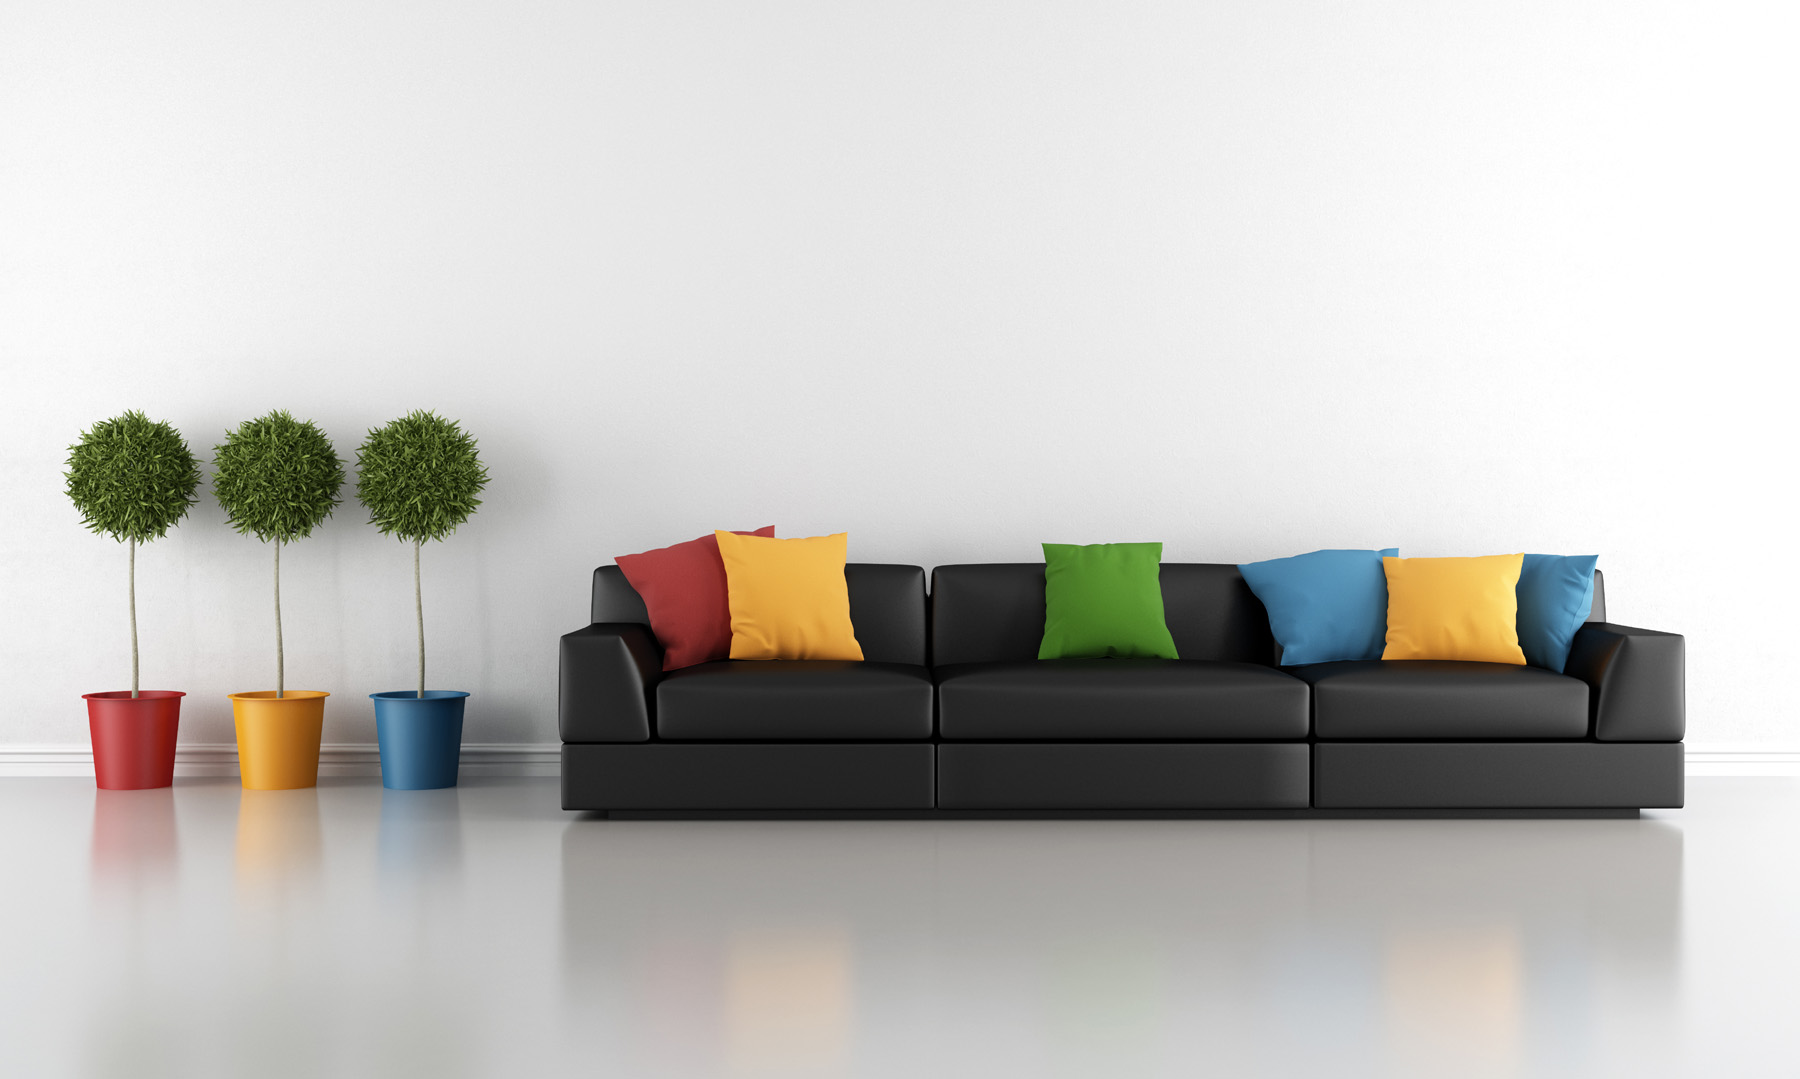 Green pillows and couch 51241